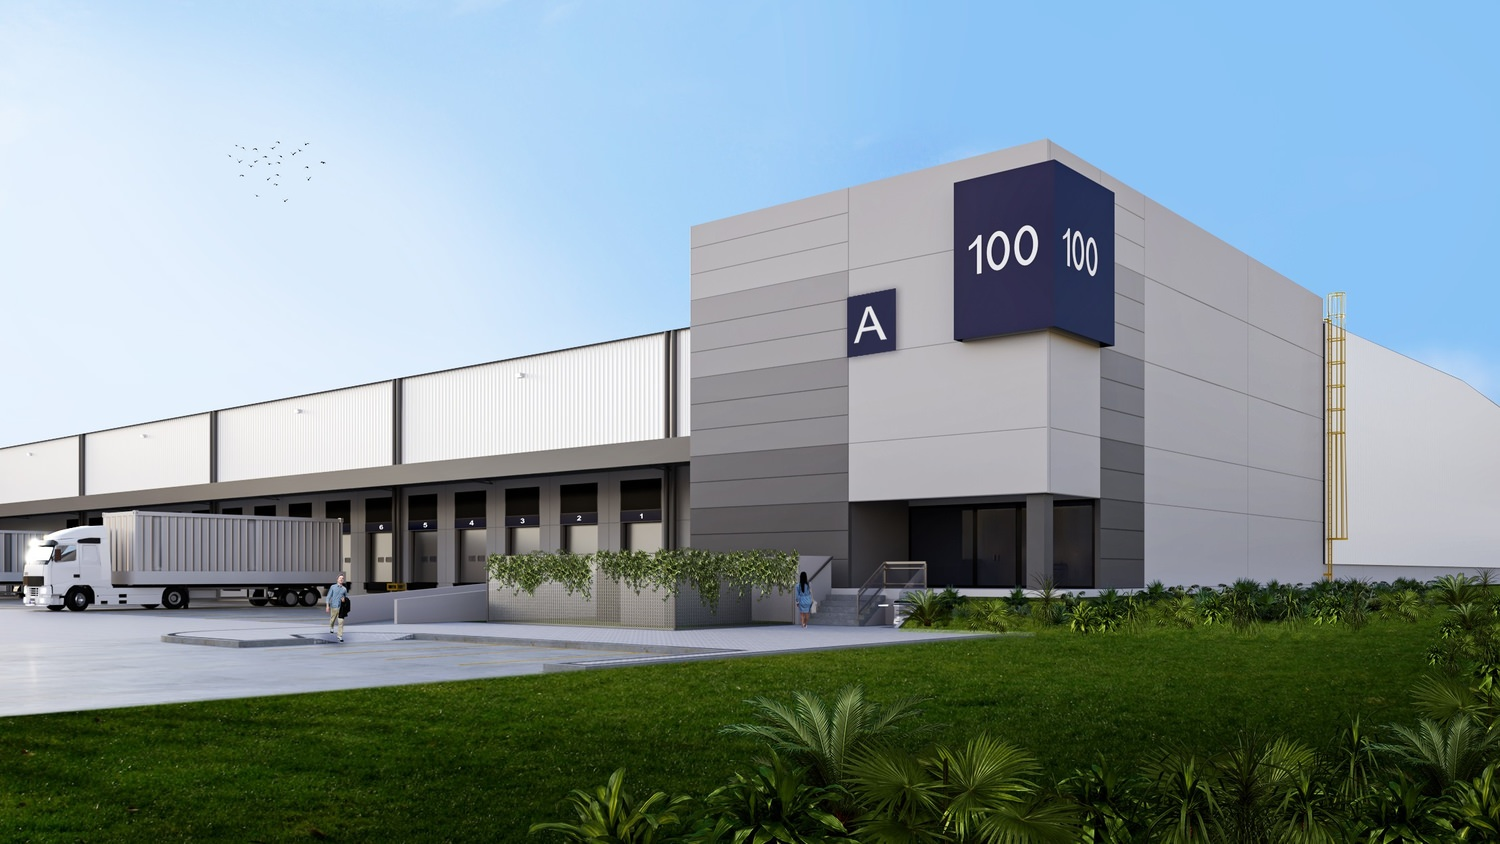 A large warehouse that has a 100 sign on the side of it and a semi truck that is backed up to the loading dock.